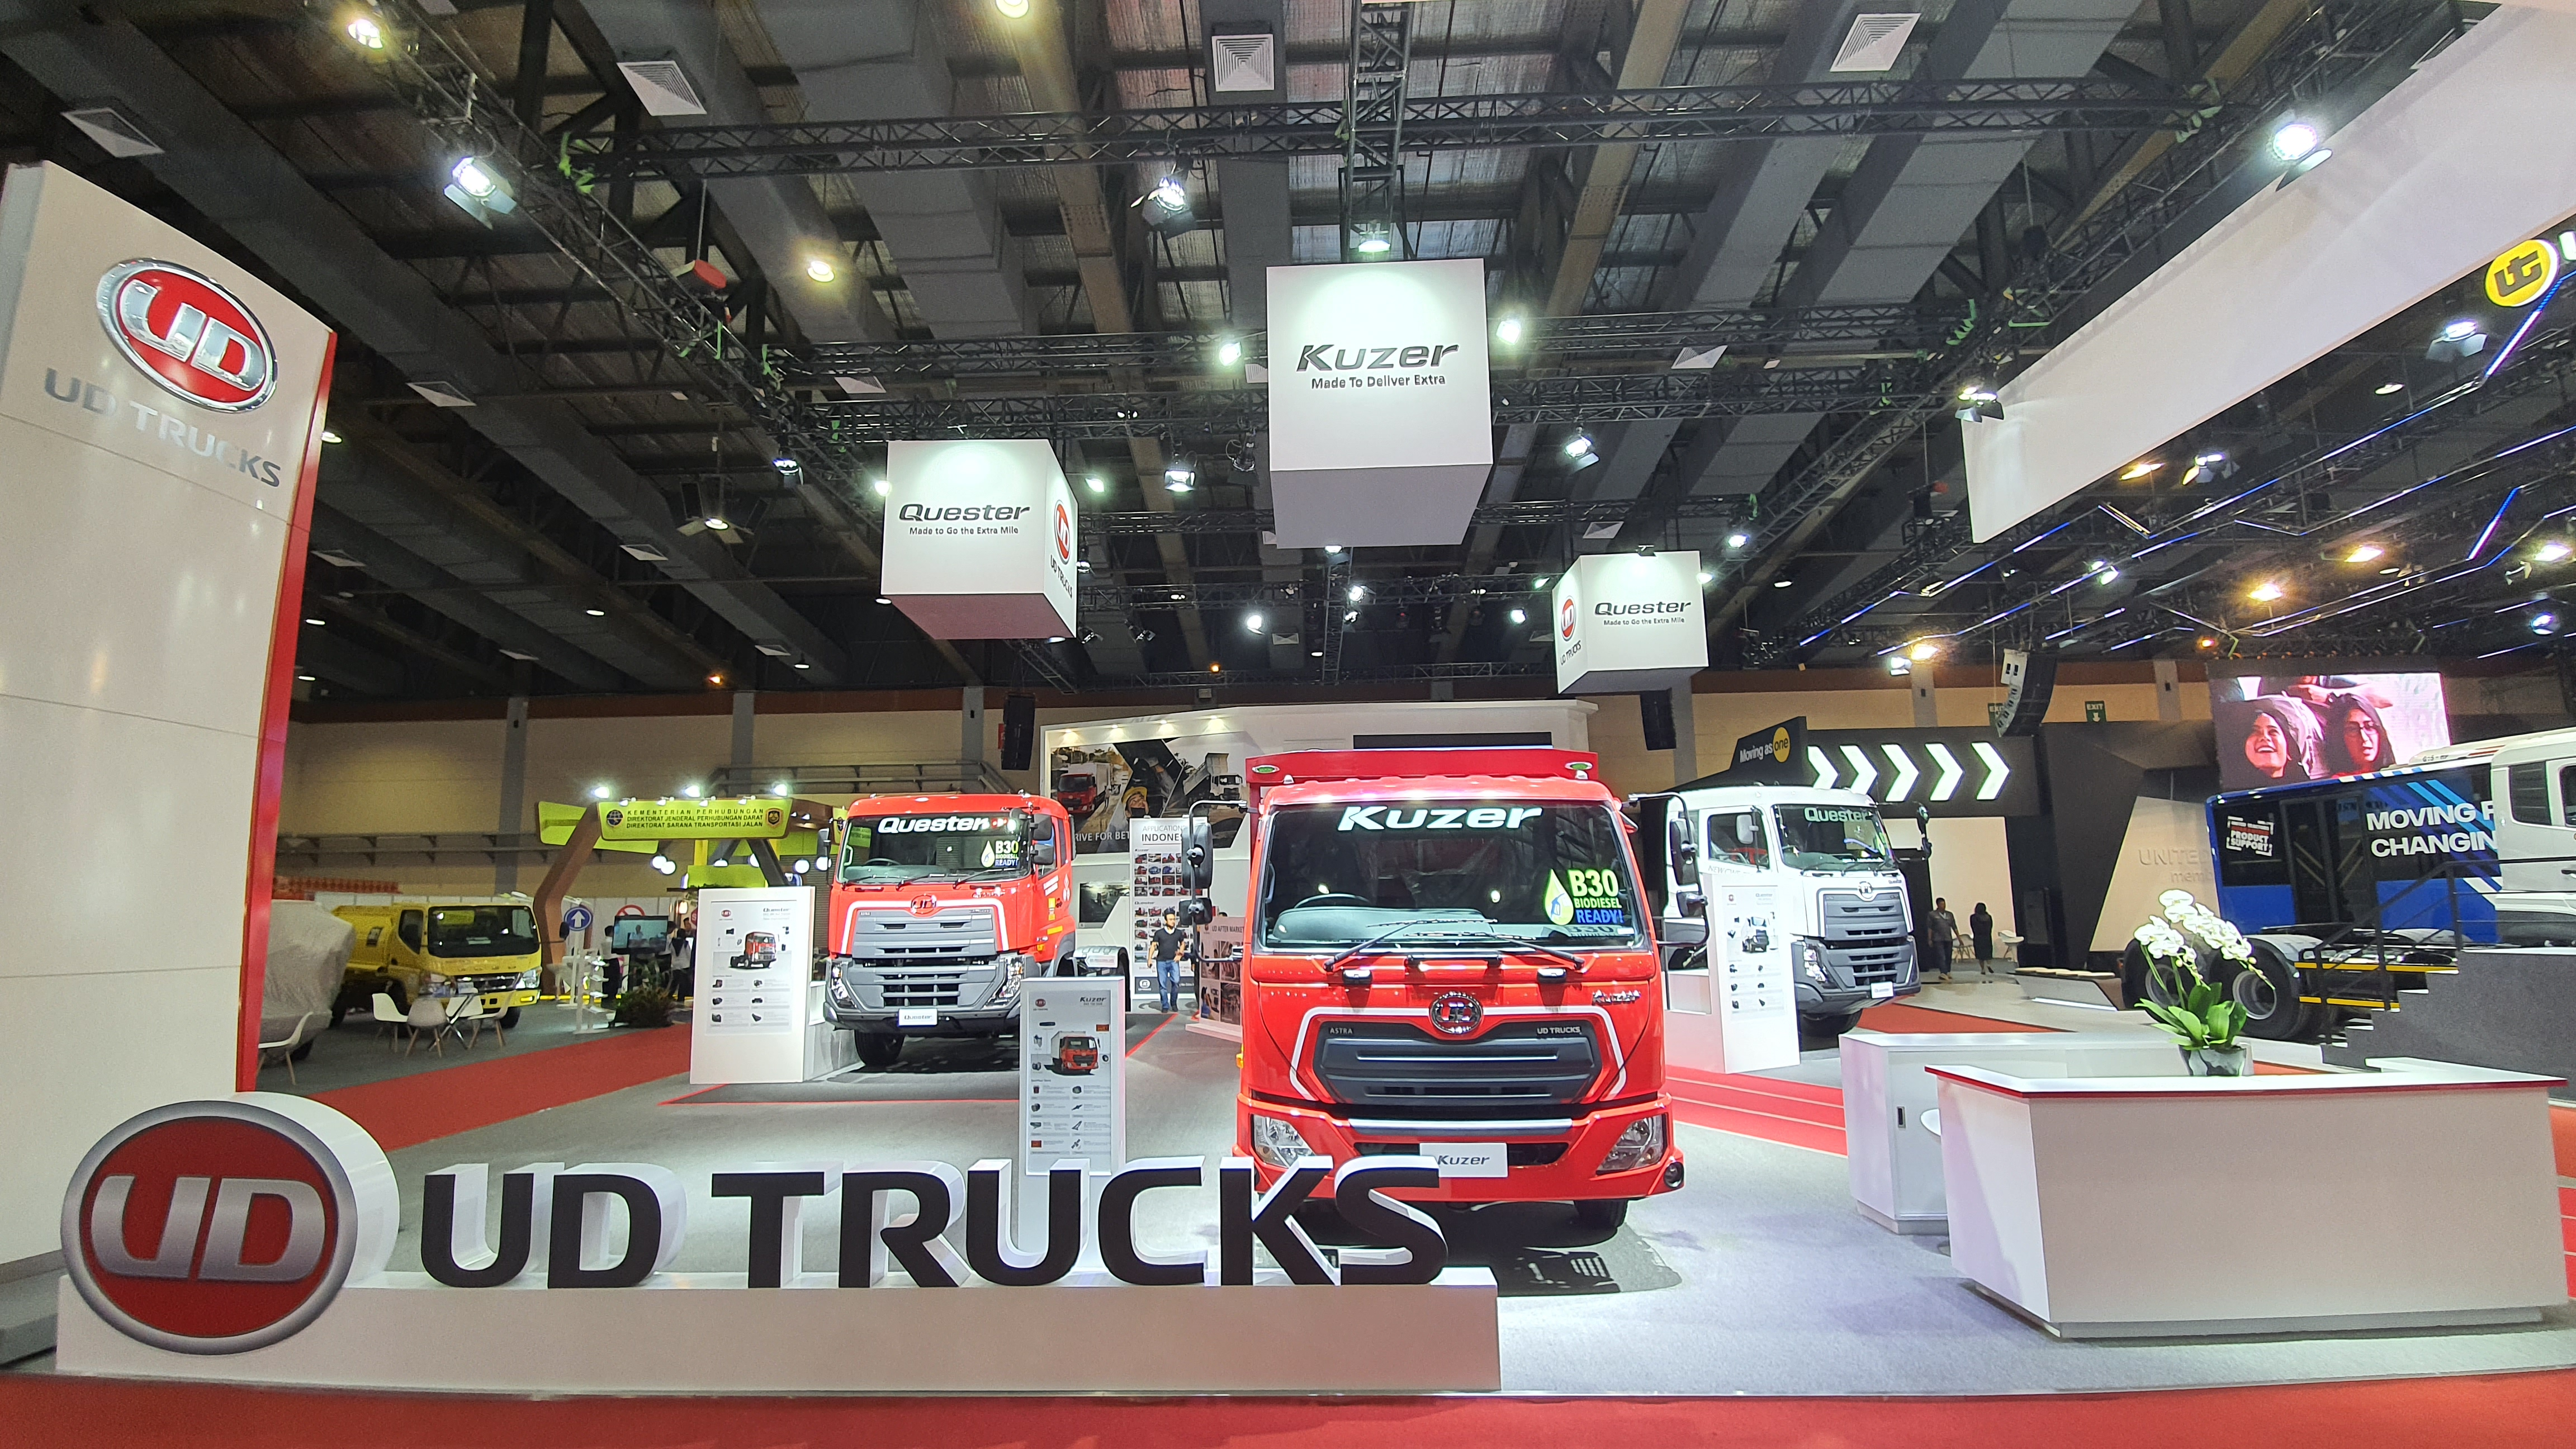 UD Trucks Showcases Kuzer & New Quester at the GIICOMVEC 2020 Event